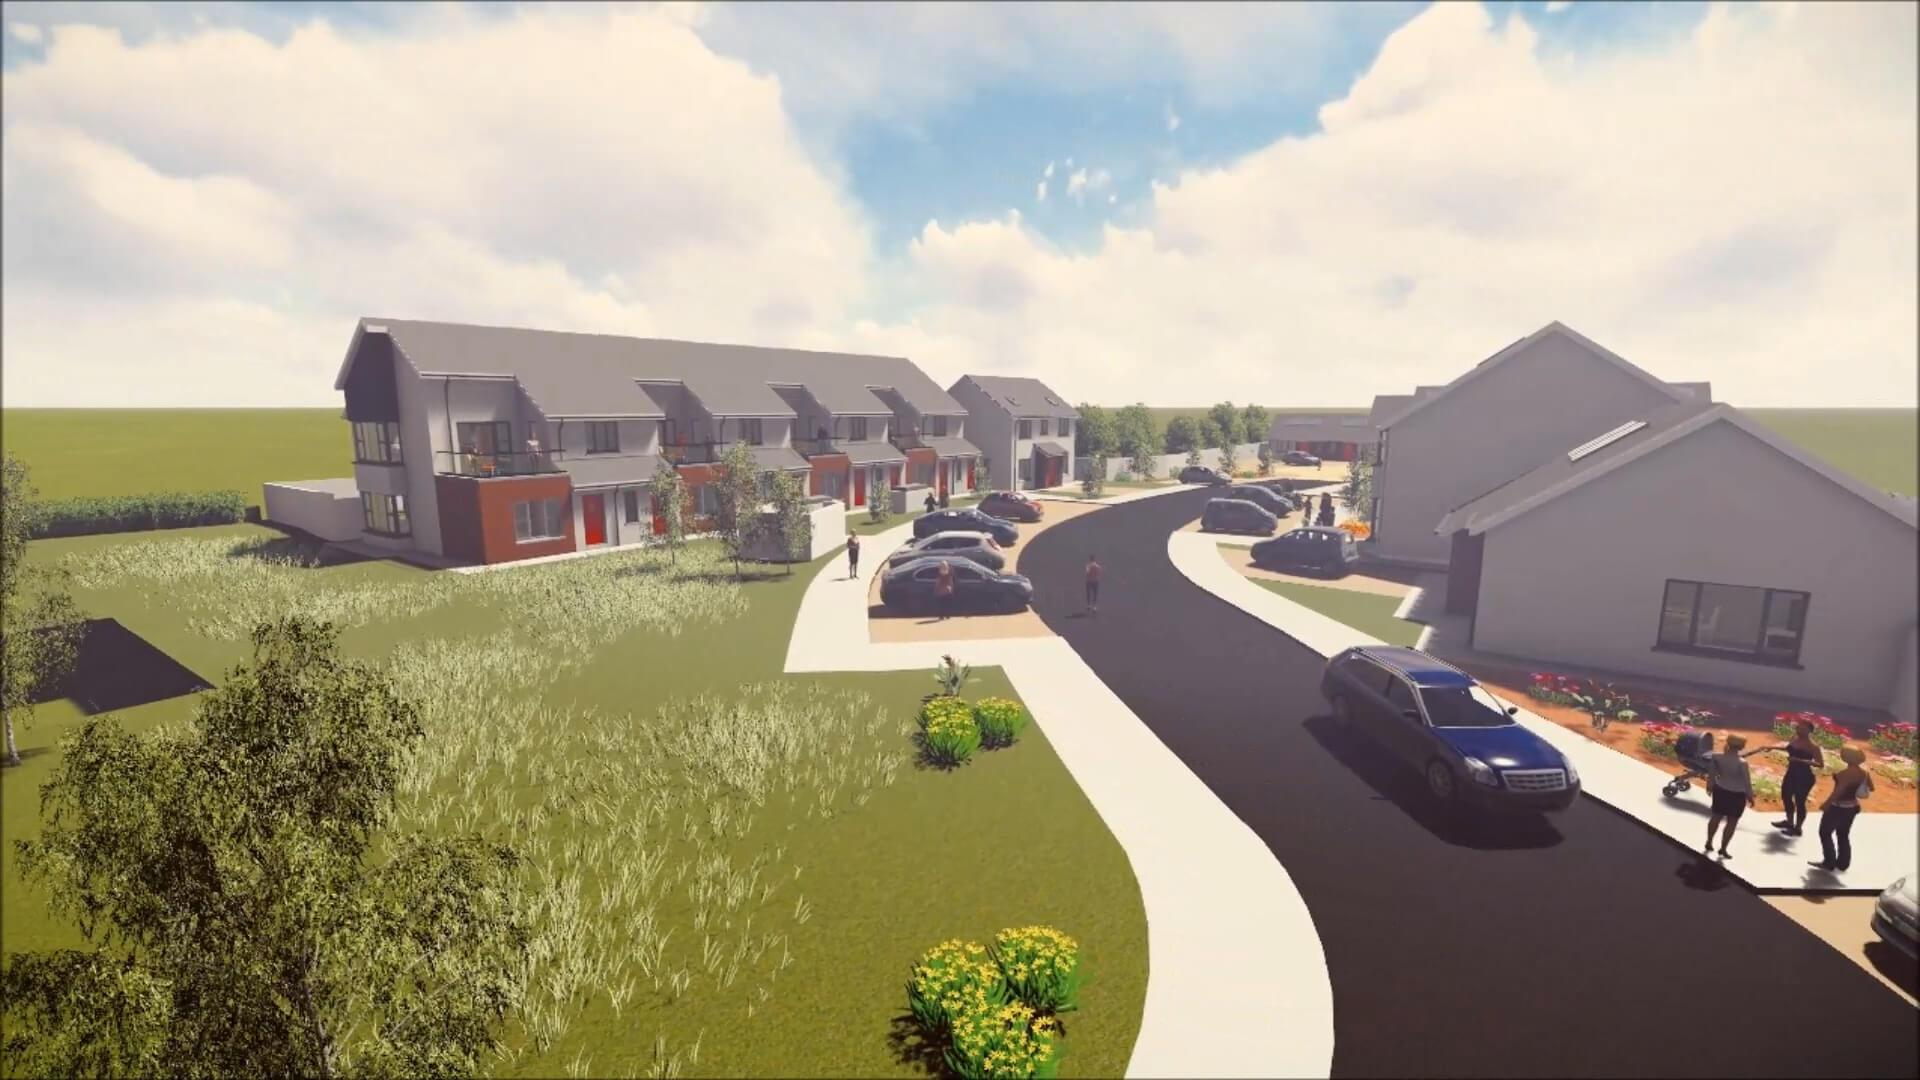 Kilkenny County Council Residential Development - Social Housing at Ballyragget, Co. Kilkenny, Ireland